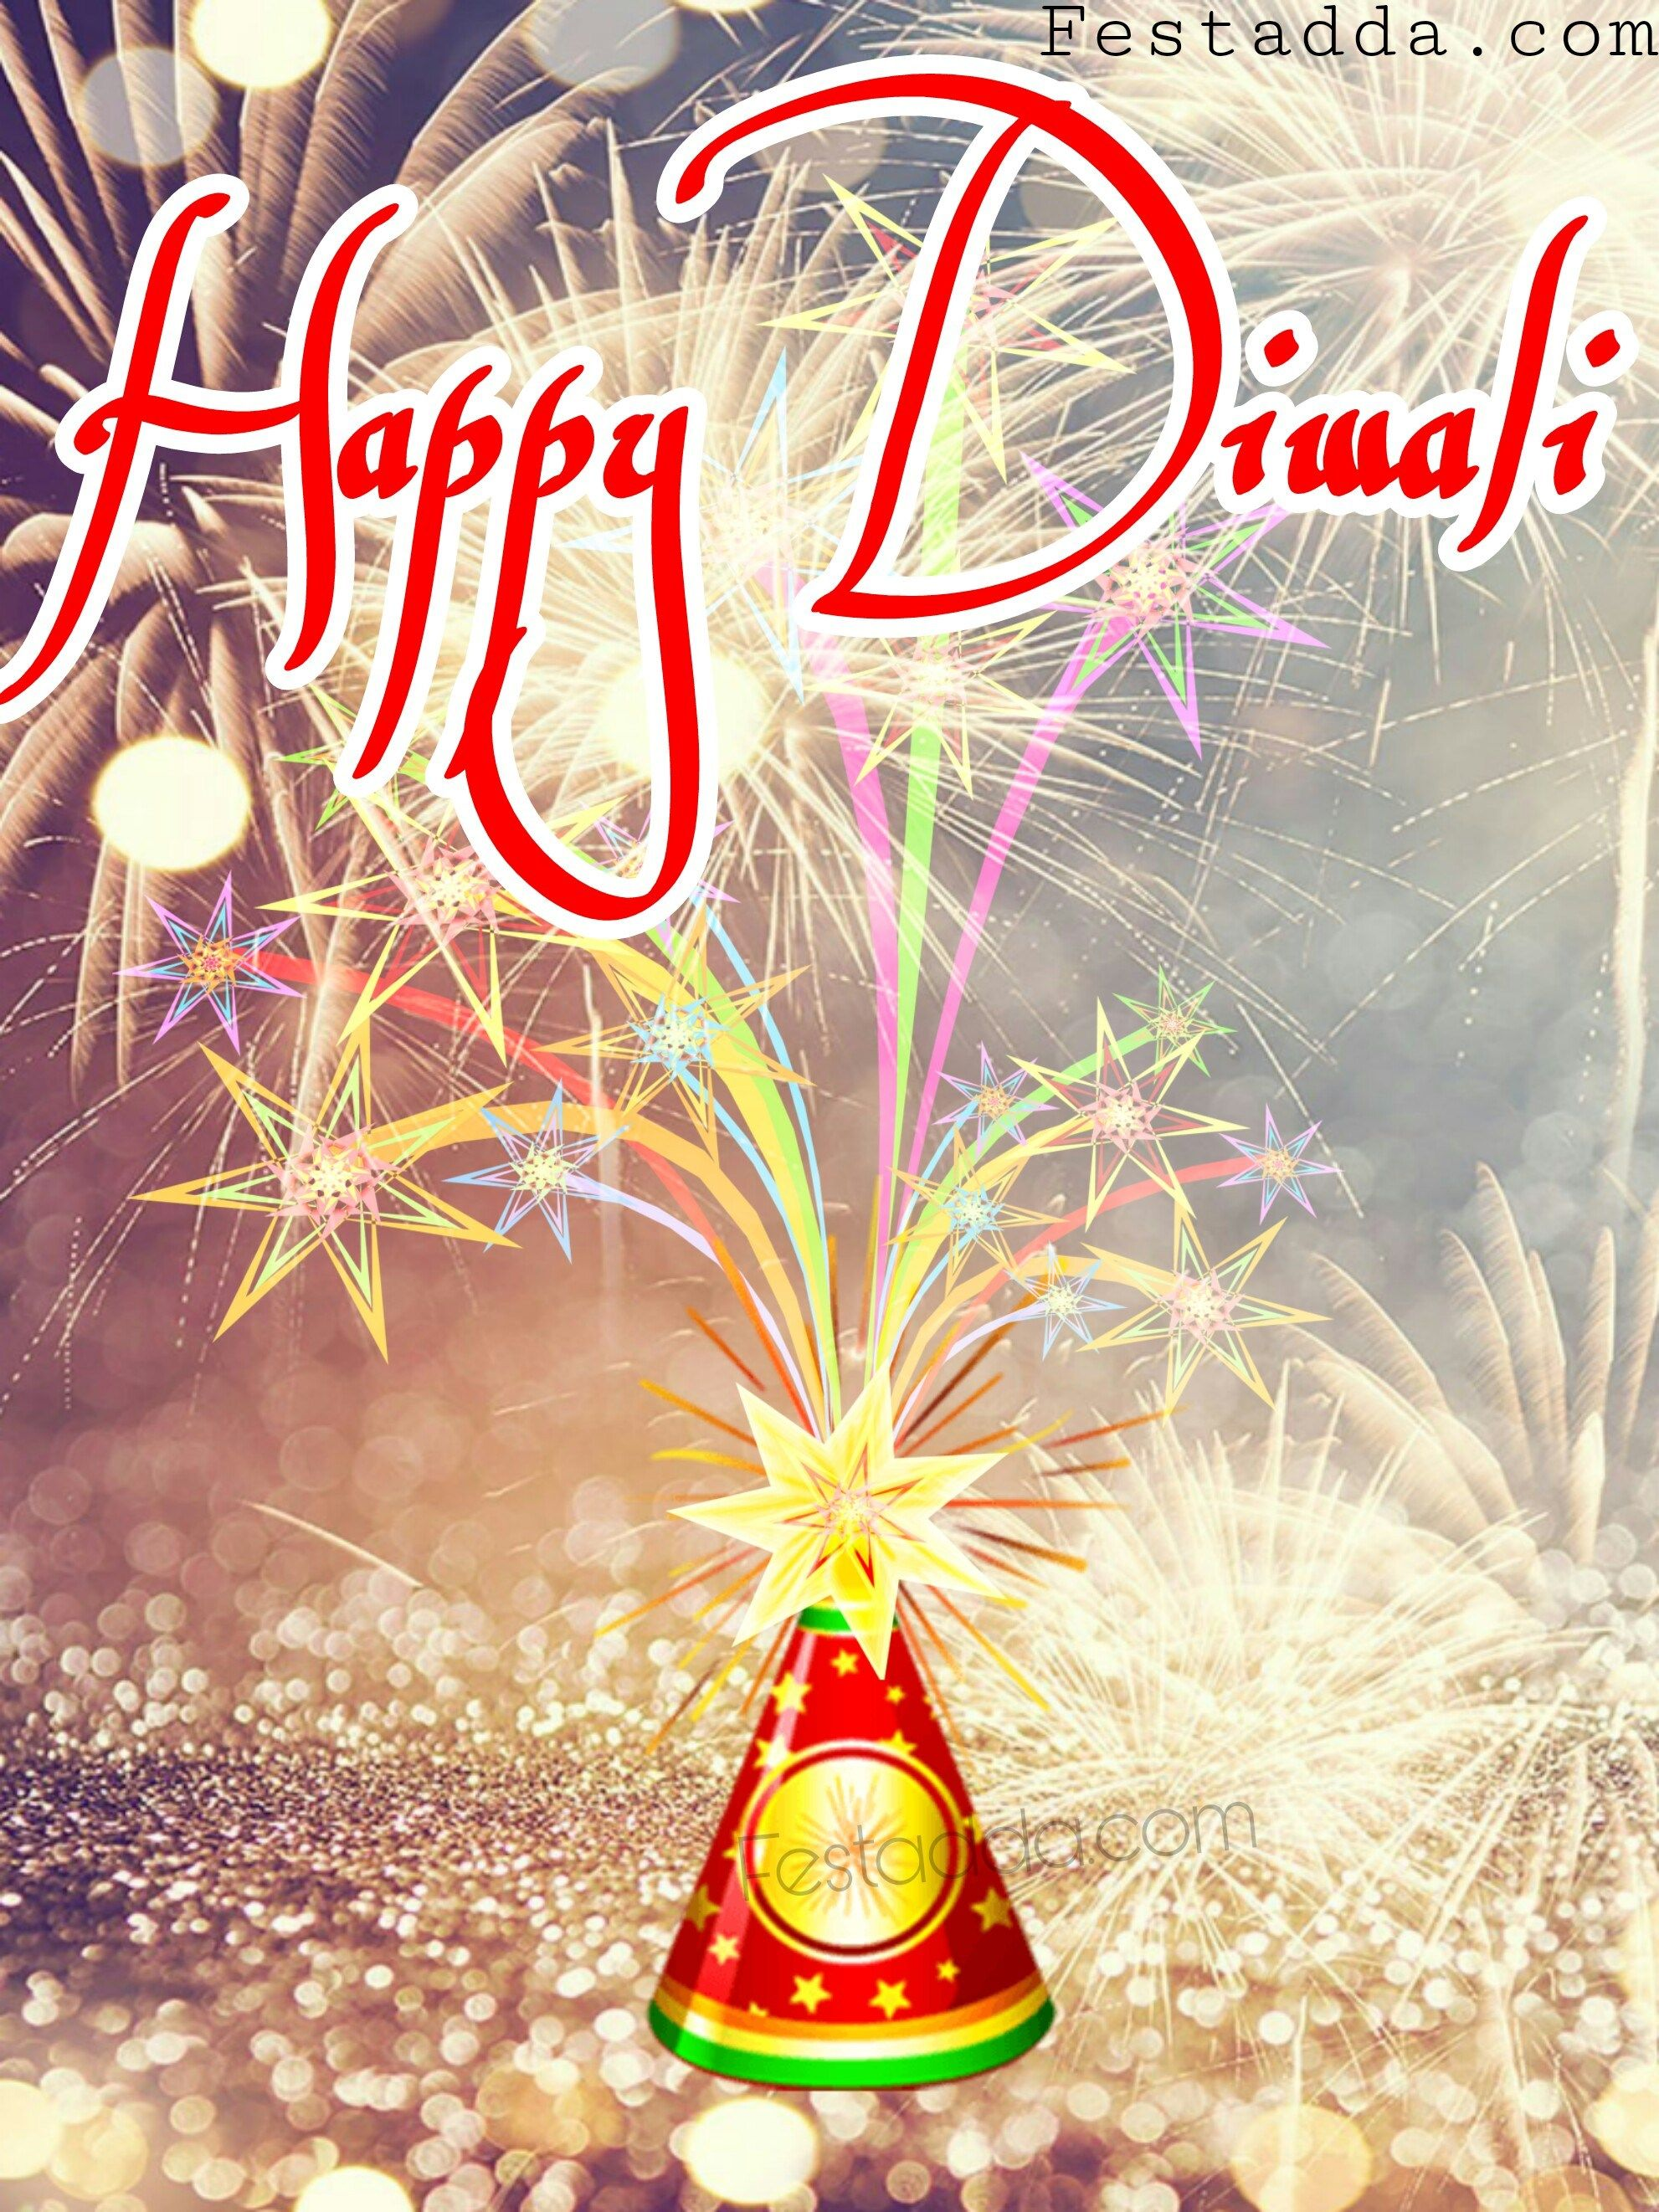 Happy Diwali Quotes 2019 Images Photos For Whatsapp Status